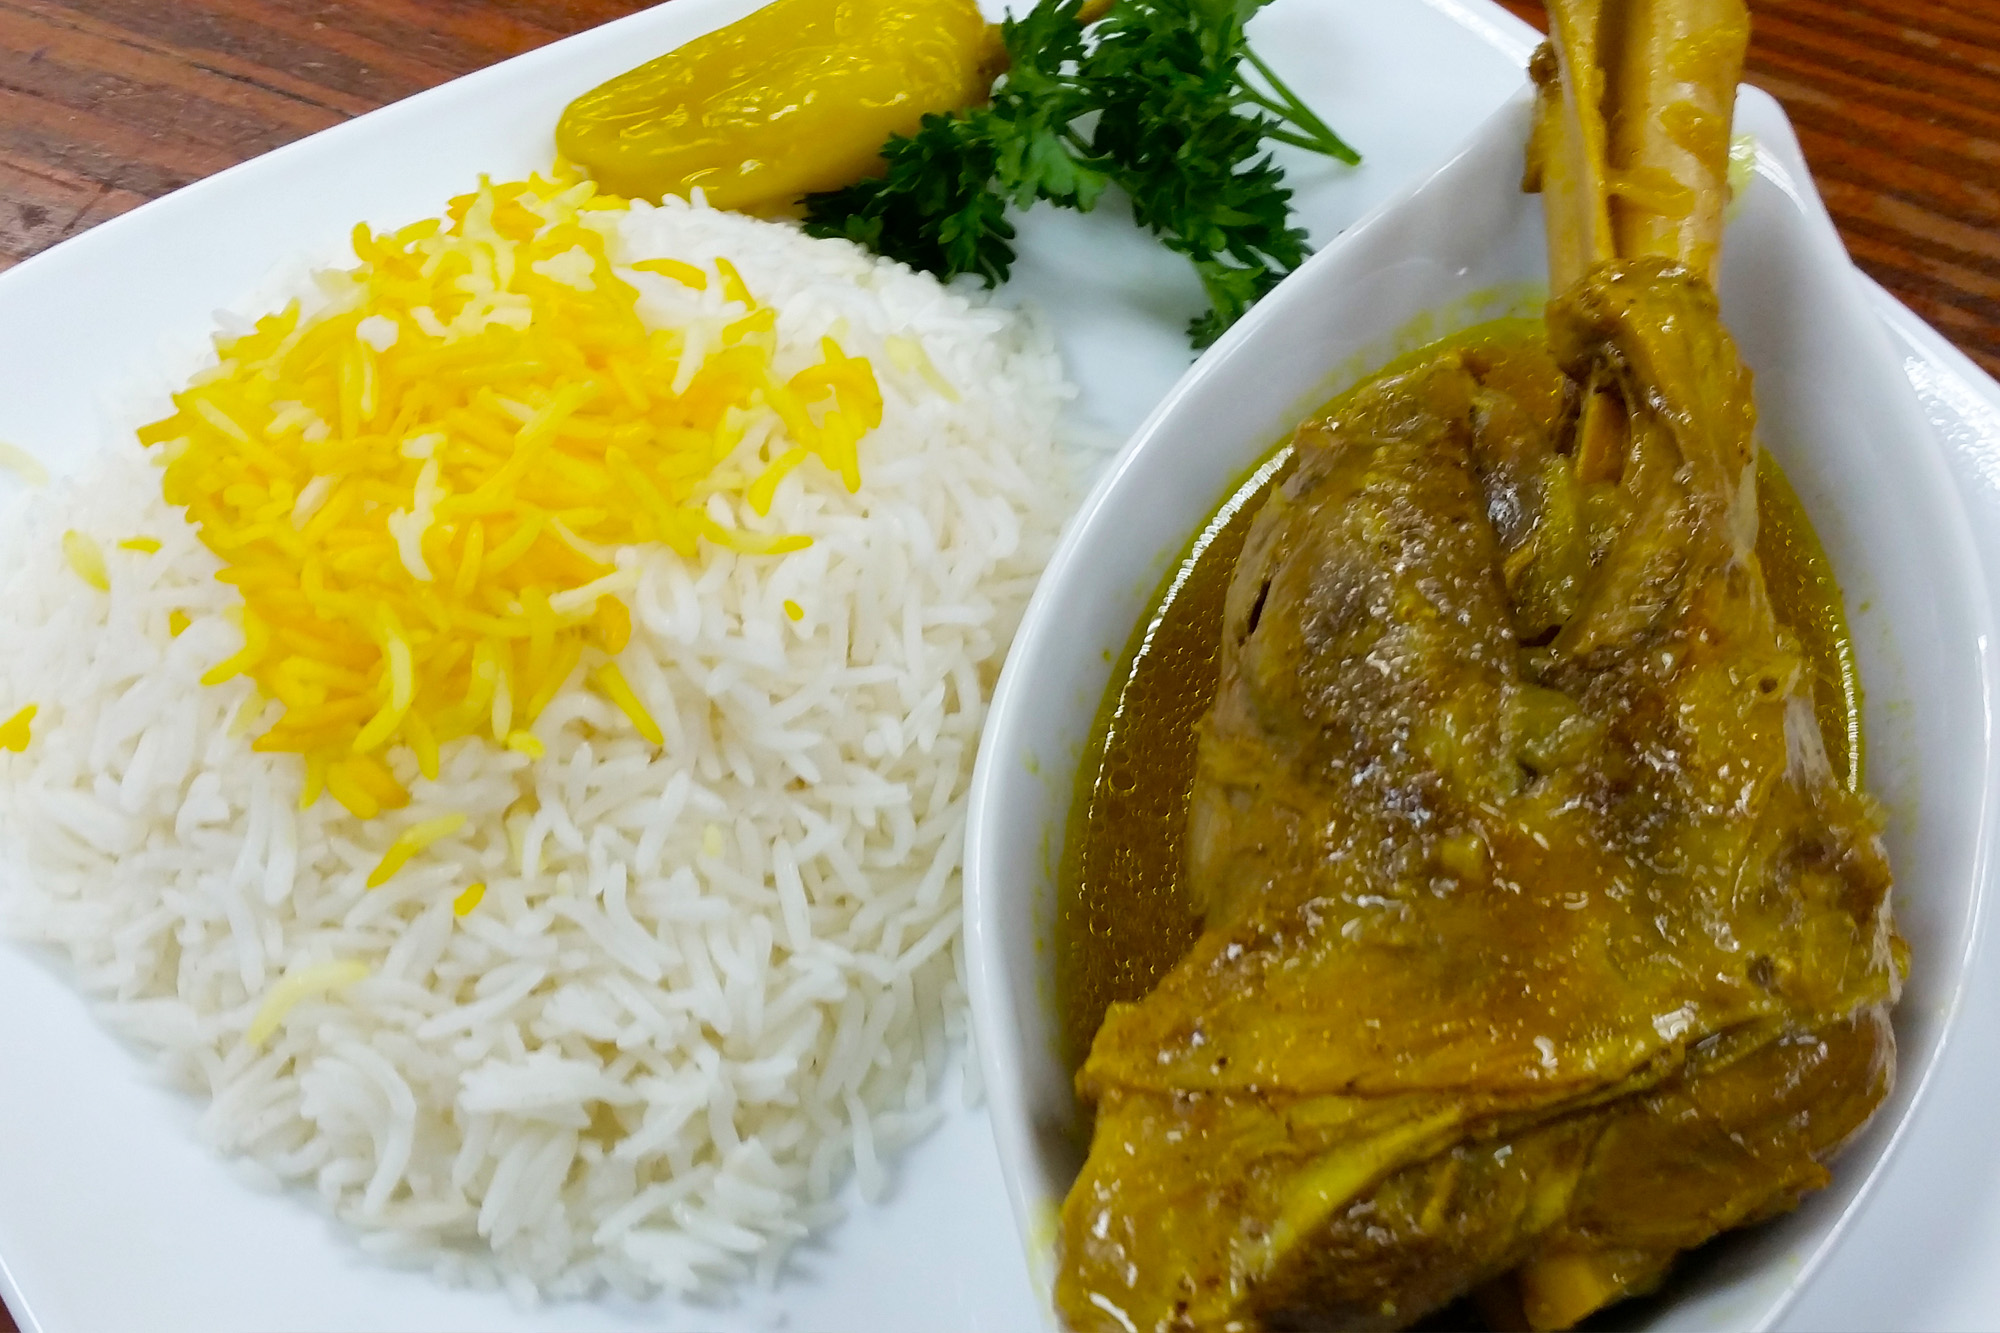 Lamb Shank slowly cooked and served with rice, dill weeds, and lima beans at Sahel Persian Restaurant